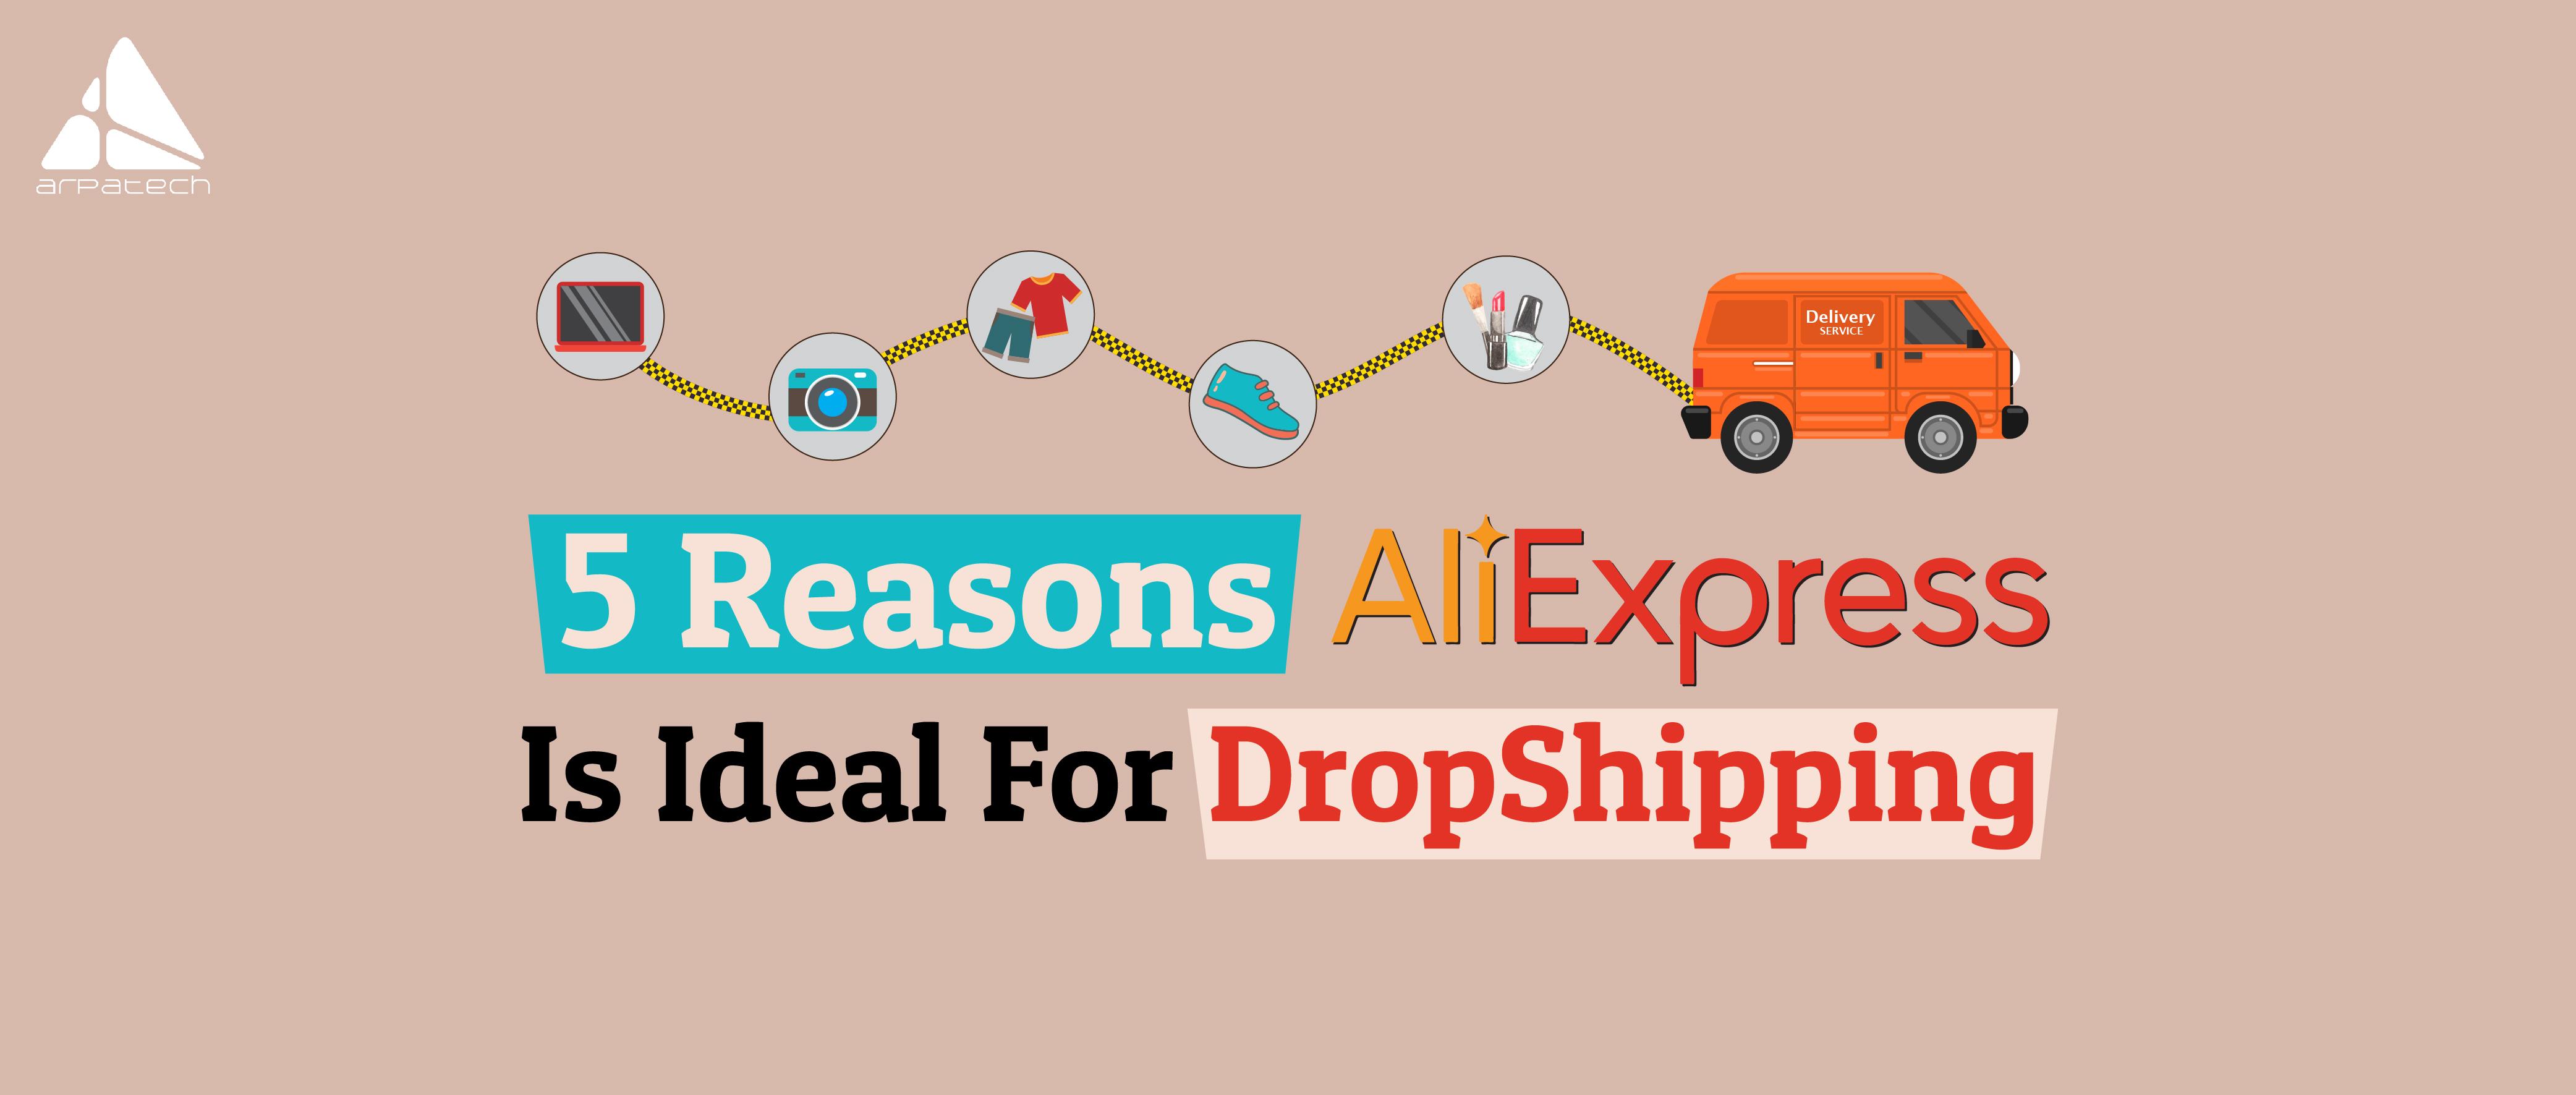 Aliexpress for dropshipping